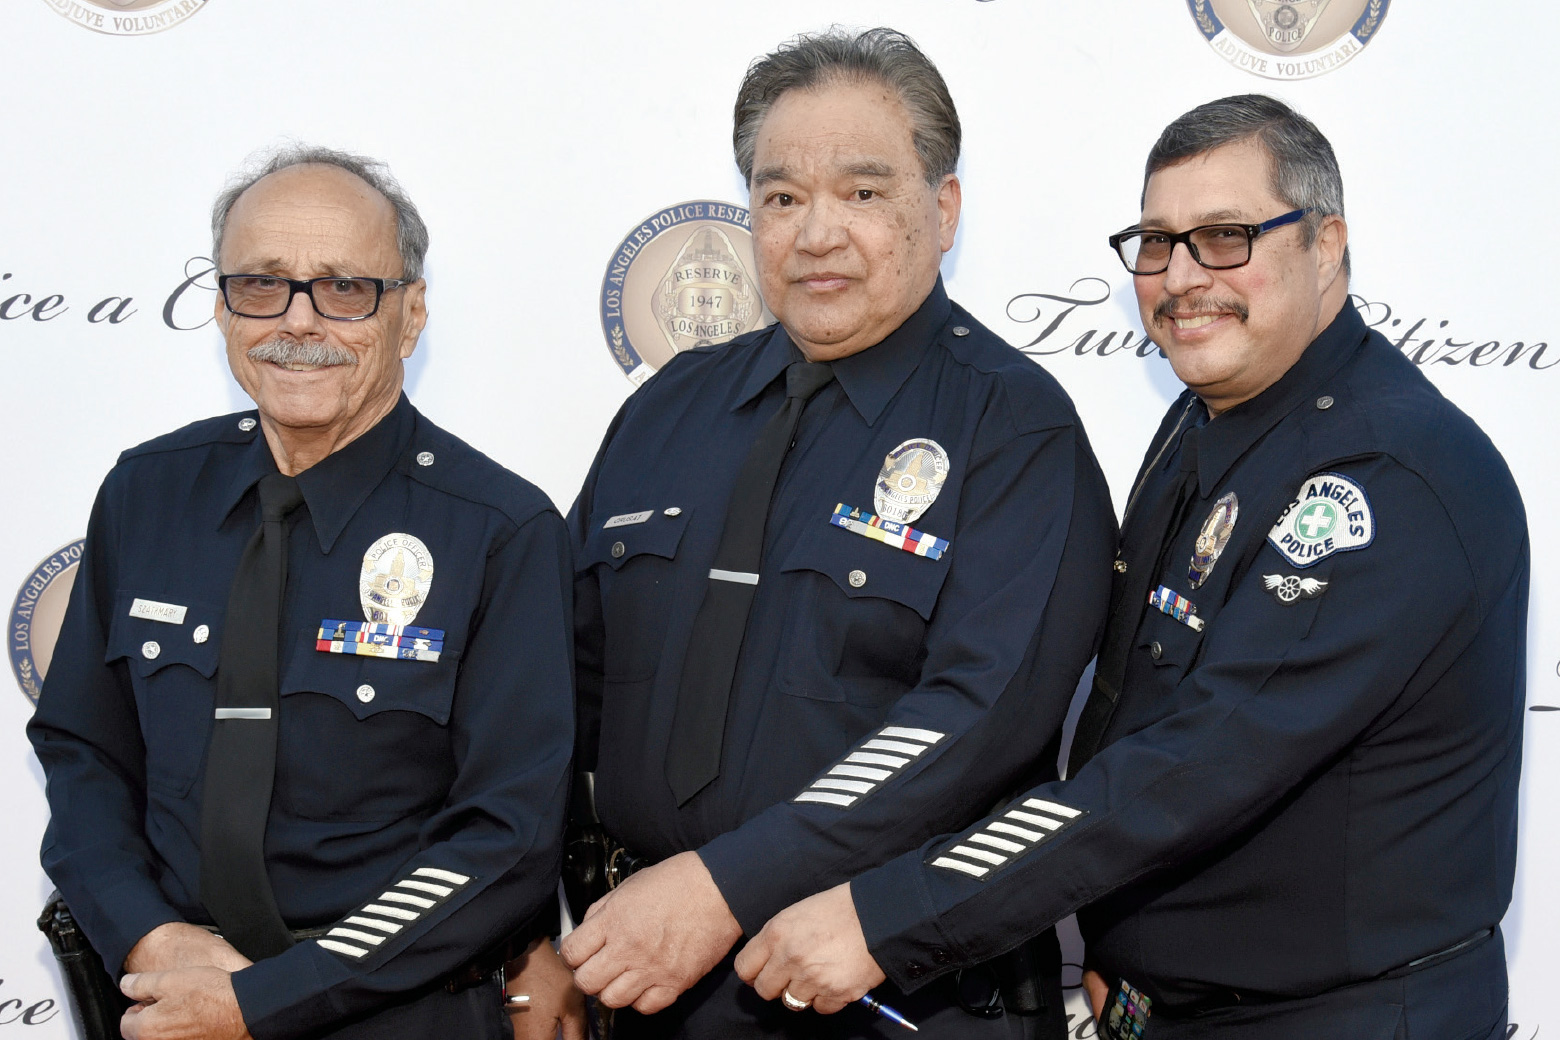 reserve-officers-of-the-year-honored-lapds-150th-anniversary-abcs-the-rookie-twice-a-citizens-22